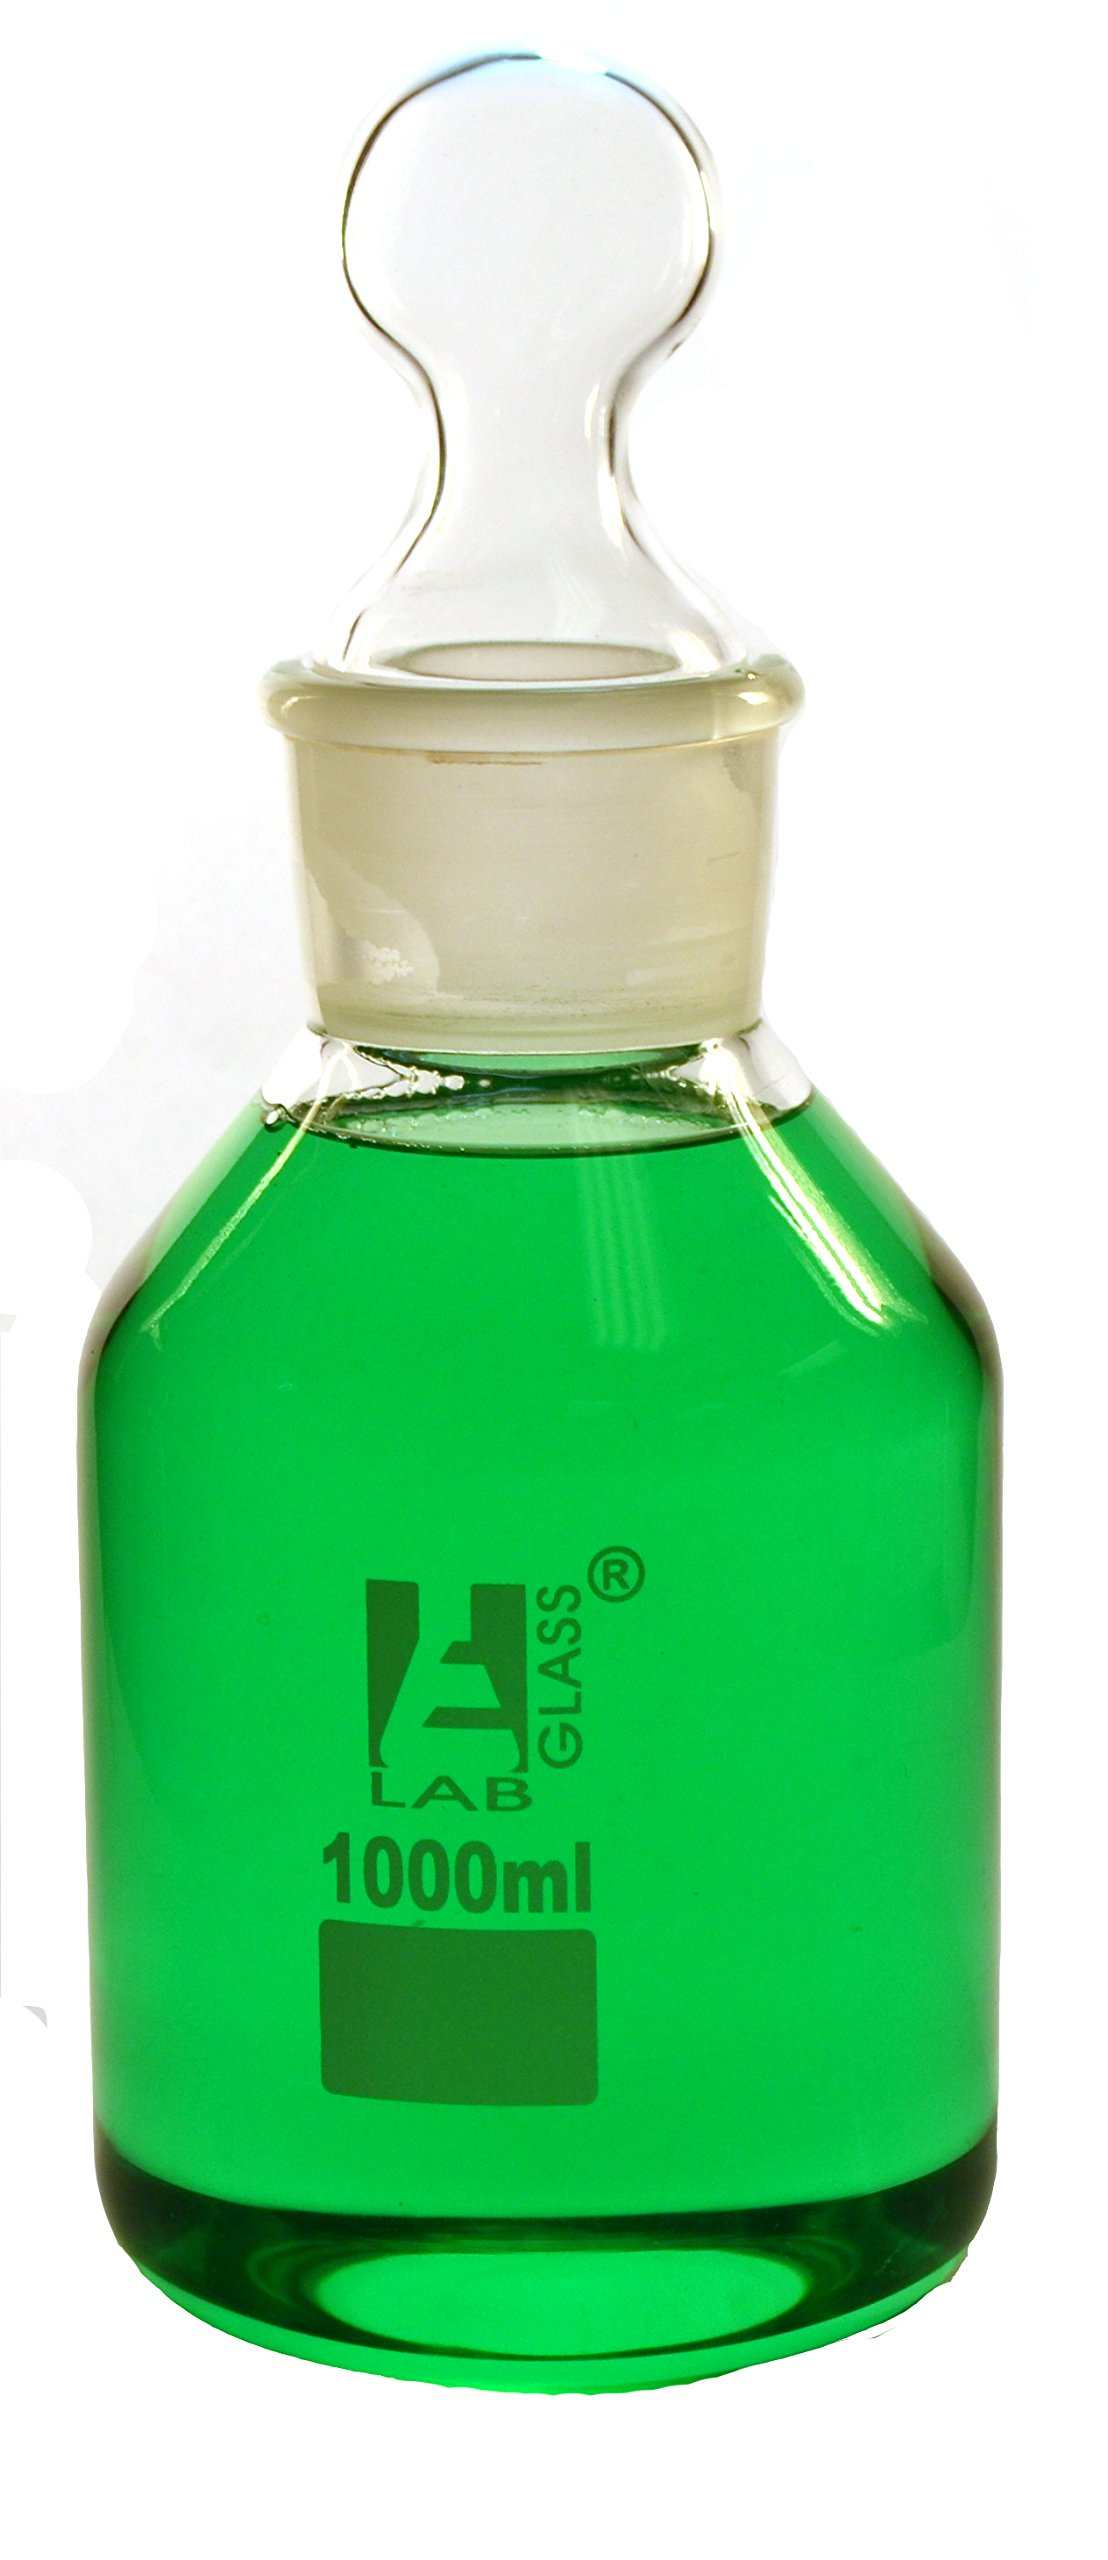 Eisco Labs 1000 ml Reagent Bottle - Borosilicate Glass with wide mouth and stopper